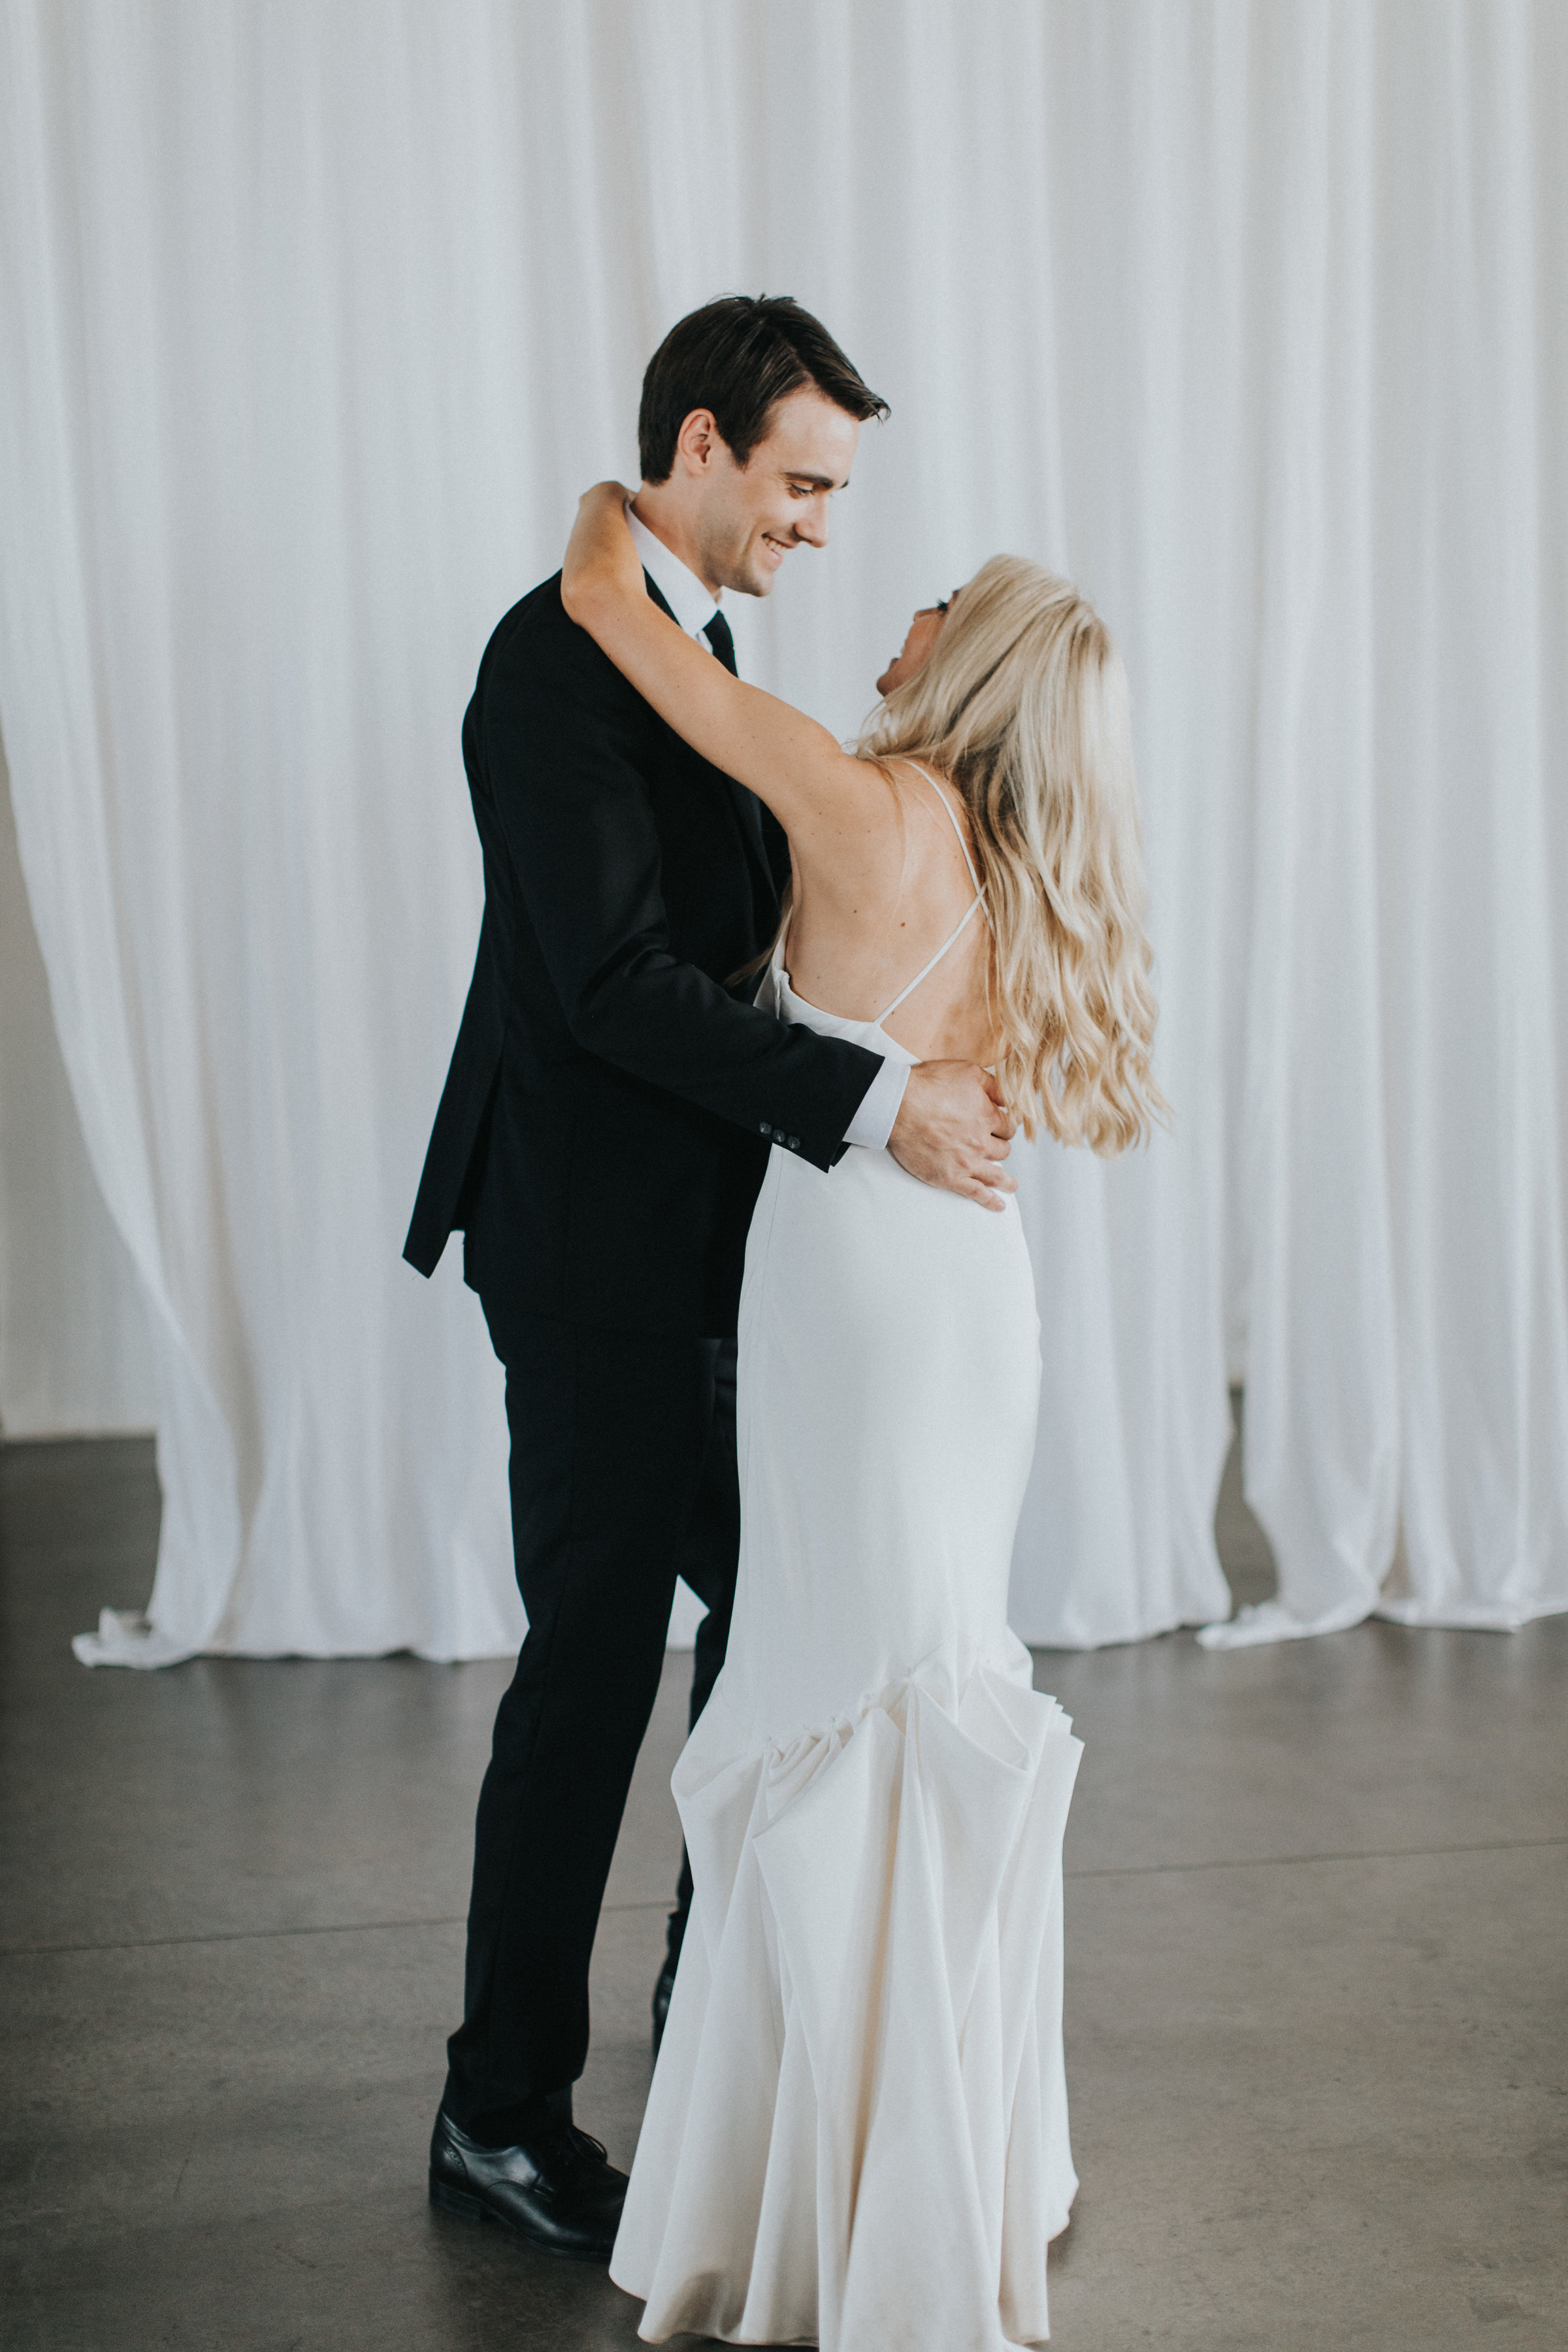 Matt+EllaryWedding-RussellHeeterPhotography-711.jpg